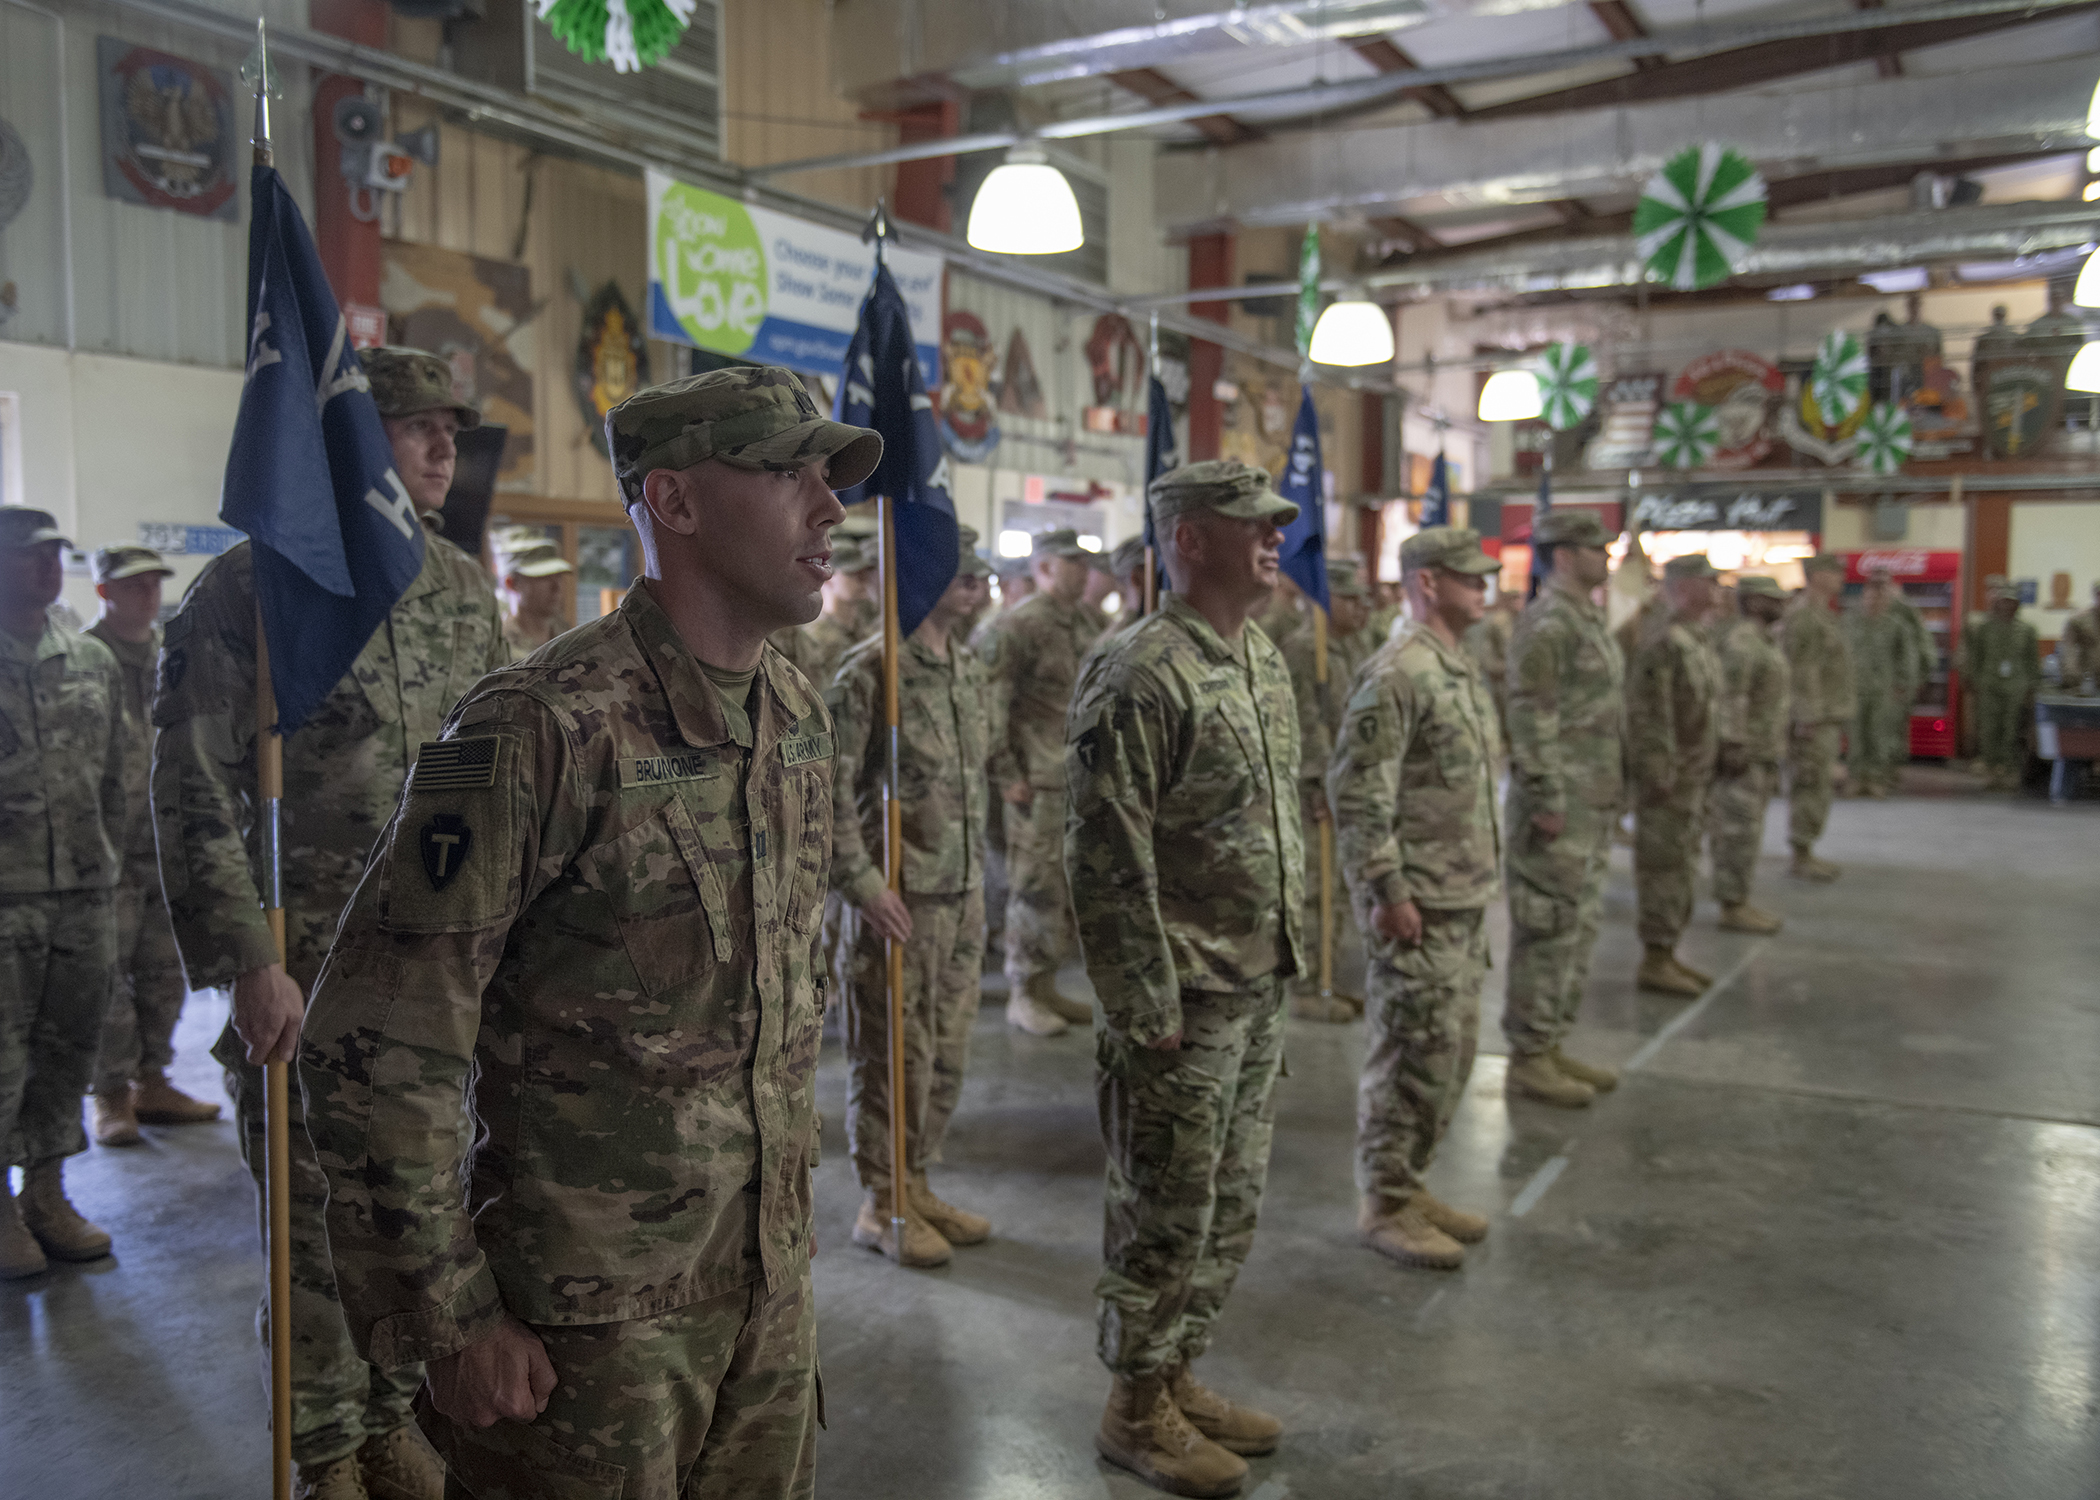 U.S. Army Soldiers from 1st Battalion, 141st Infantry Regiment, Task Force Alamo, Texas National Guard, stand at attention during a transfer of authority ceremony at Camp Lemonnier, Djibouti, March 15, 2019. The 2nd Battalion, 113th Infantry Regiment, Task Force Warrior, New Jersey National Guard, assumed responsibility as the security forces battalion for Combined Joint Task Force-Horn of Africa and will also contribute to international efforts to enhance security and stability in East Africa. (U.S. Air Force Photo by Tech. Sgt. Shawn Nickel)